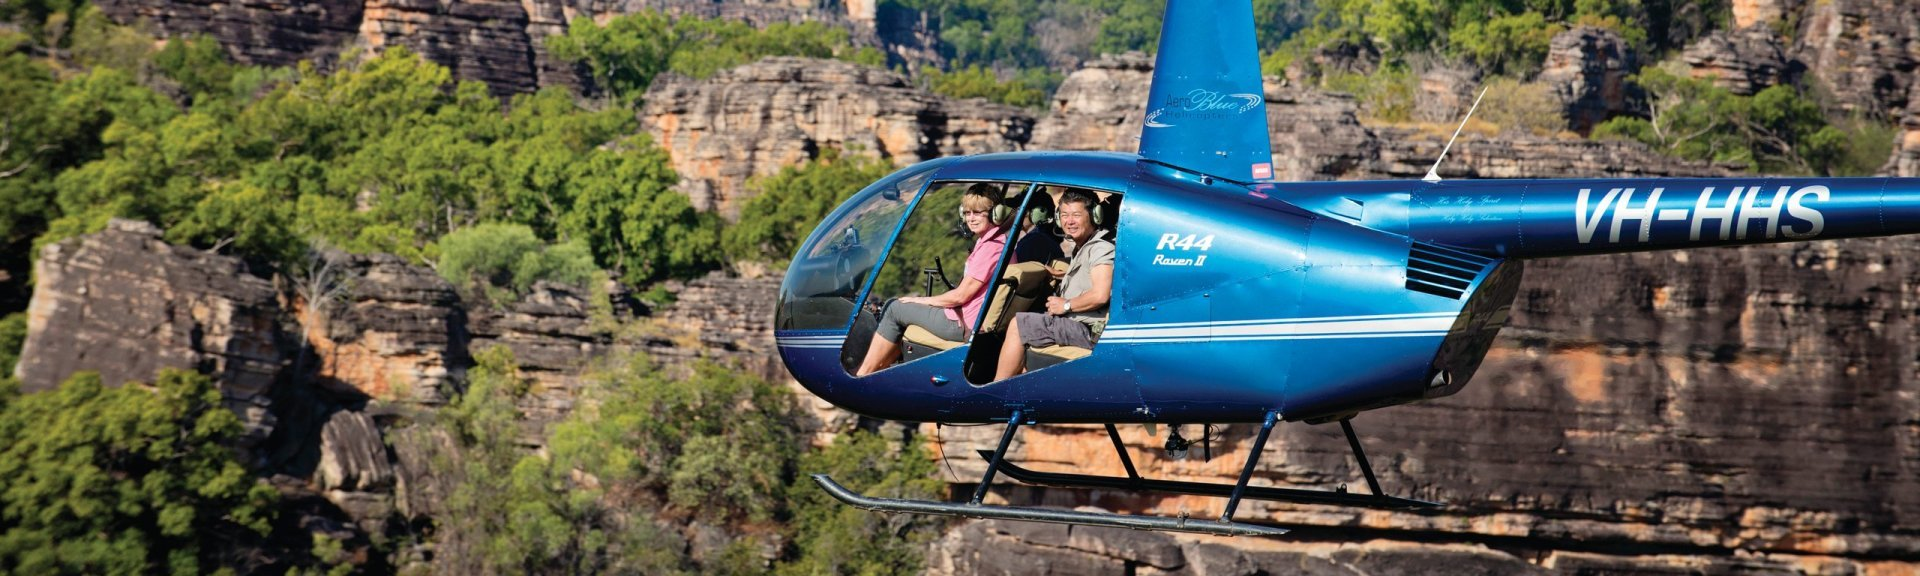 Helicopter flight. Photo: Tourism NT